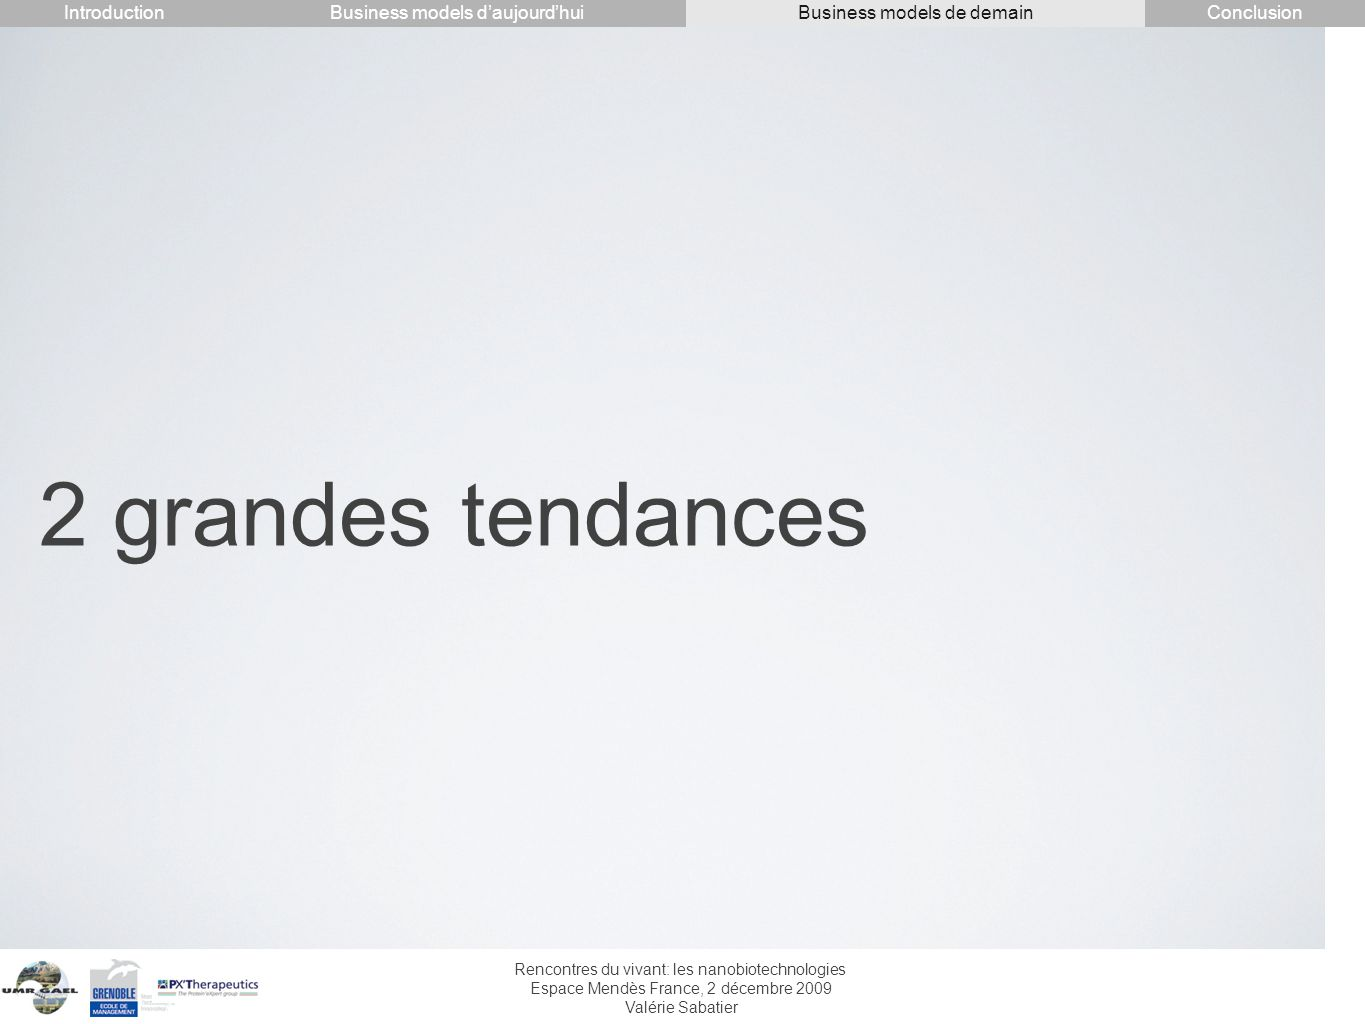 2 grandes tendances Introduction Conclusion